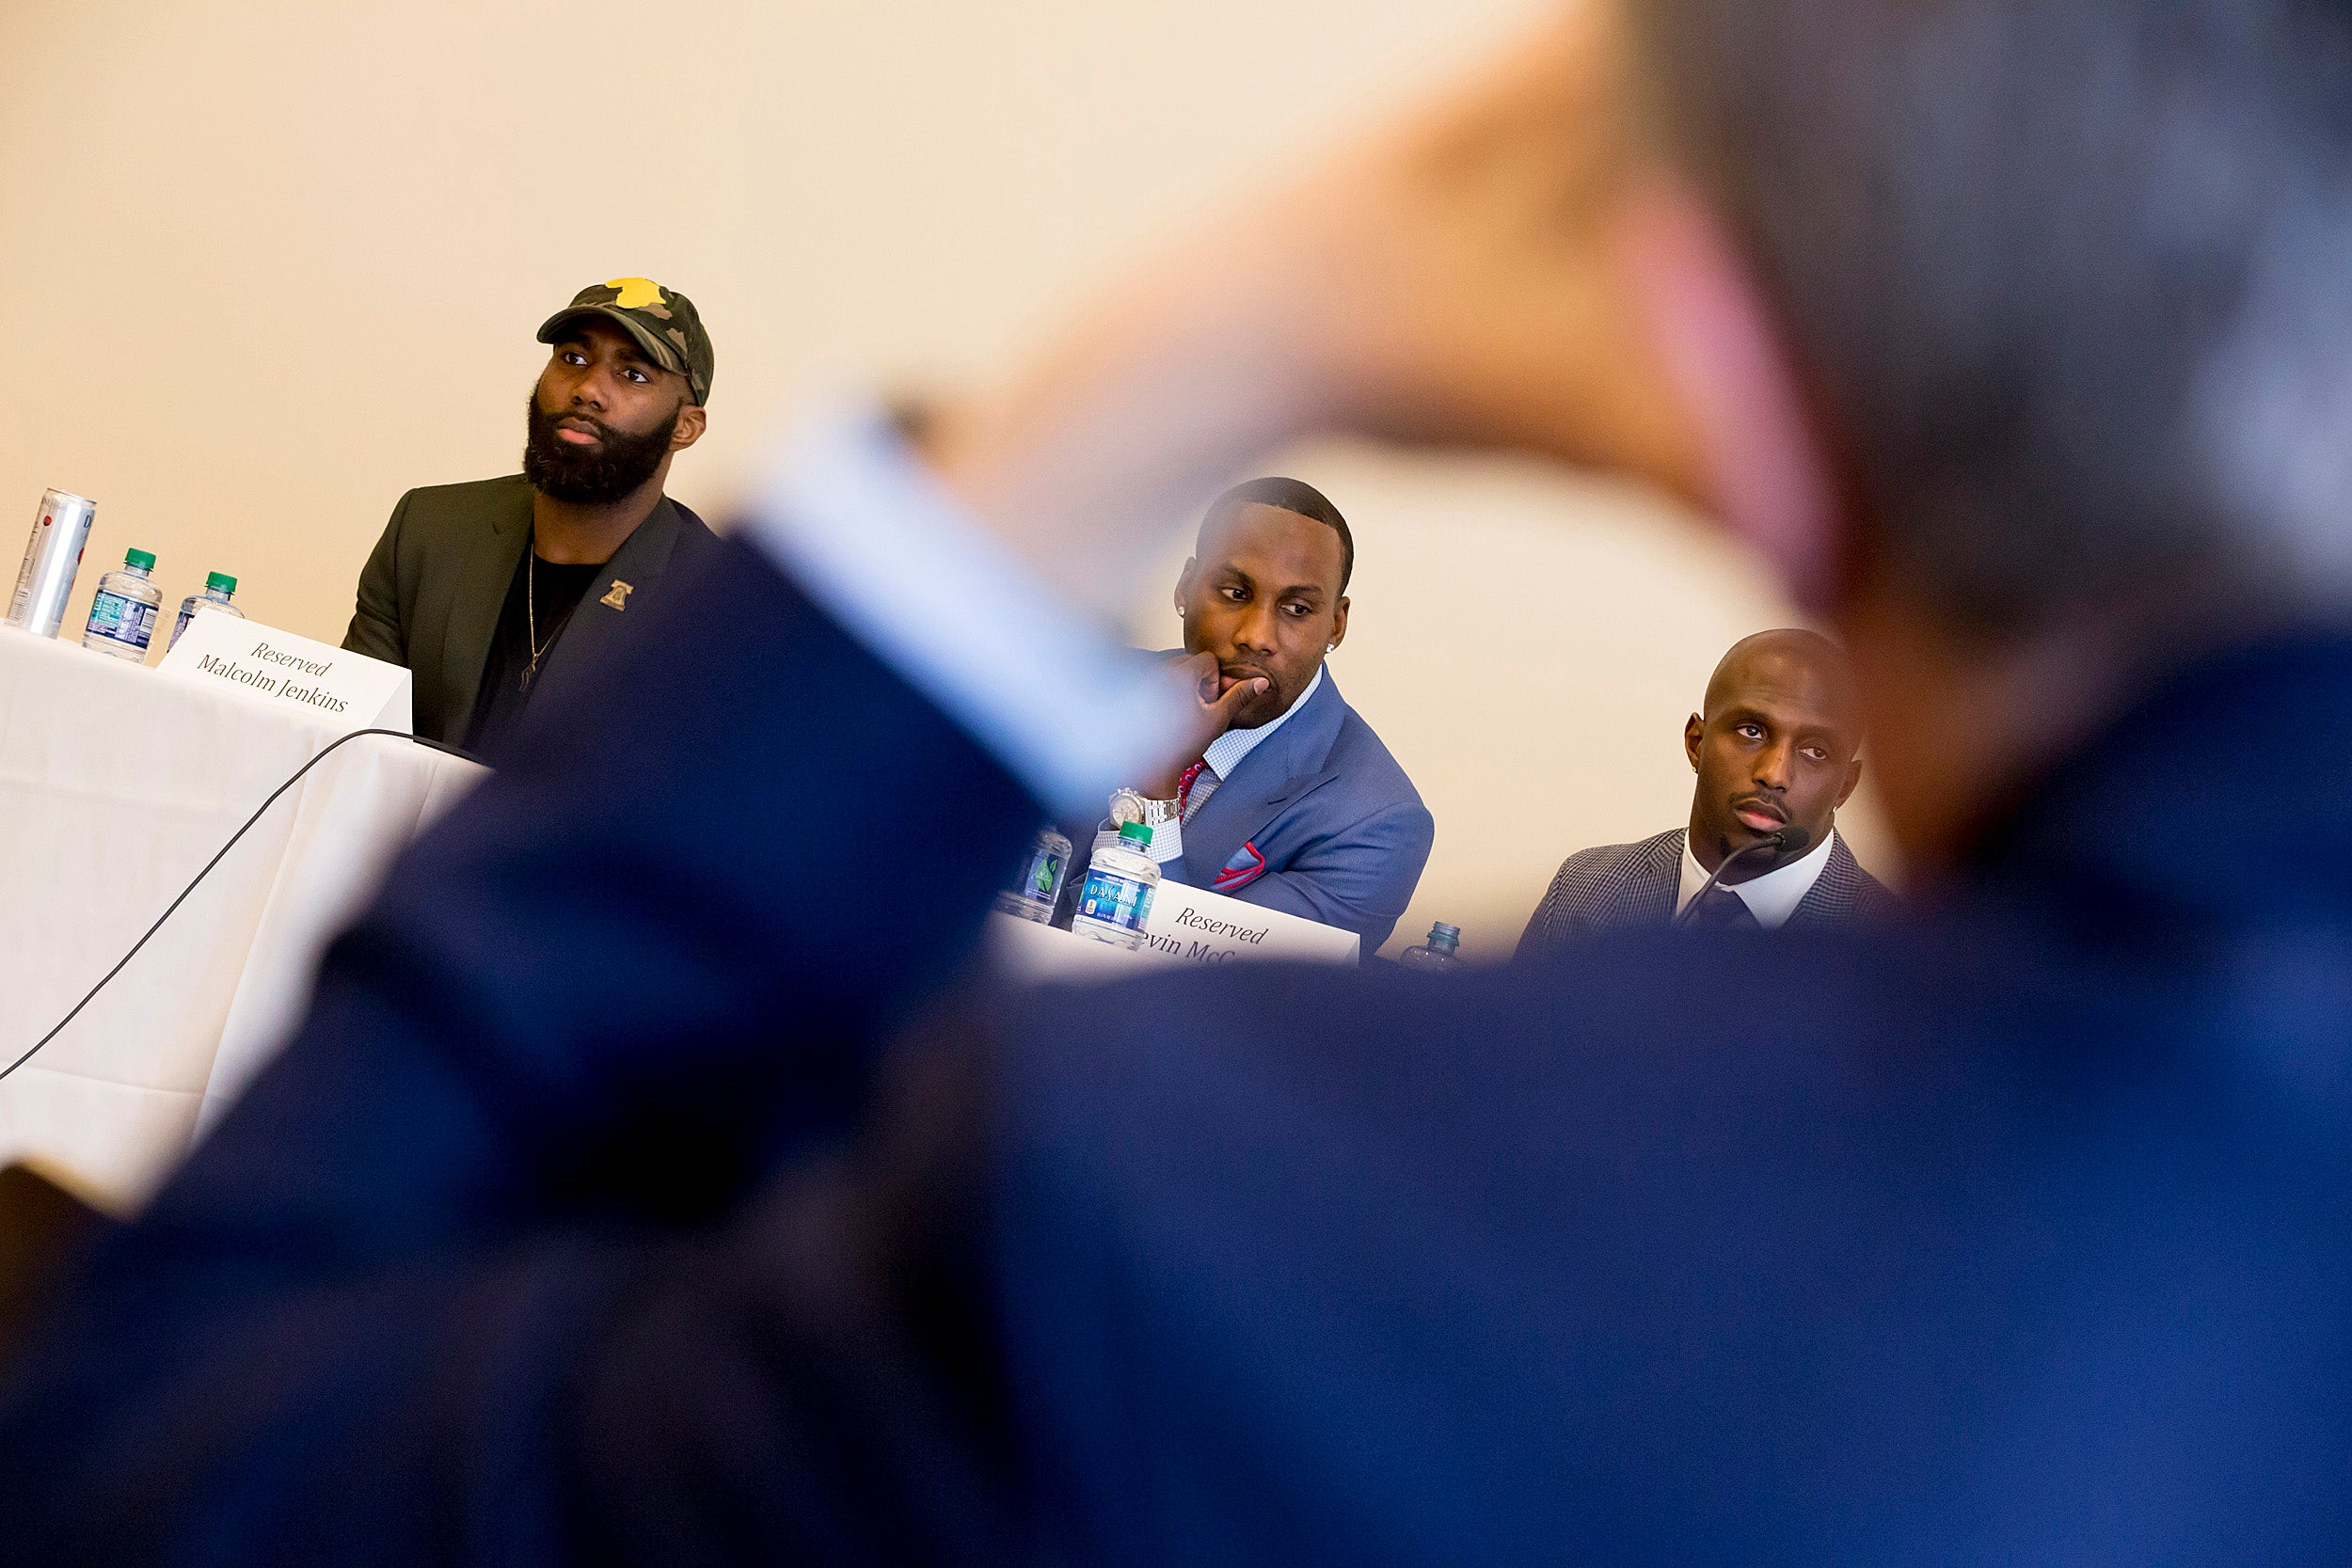 Current and former NFL players Malcolm Jenkins (from left), Anquan Boldin, and Devin McCourty came to Harvard Law School as part of the National Football League Player's Coalition project to promote social justice.